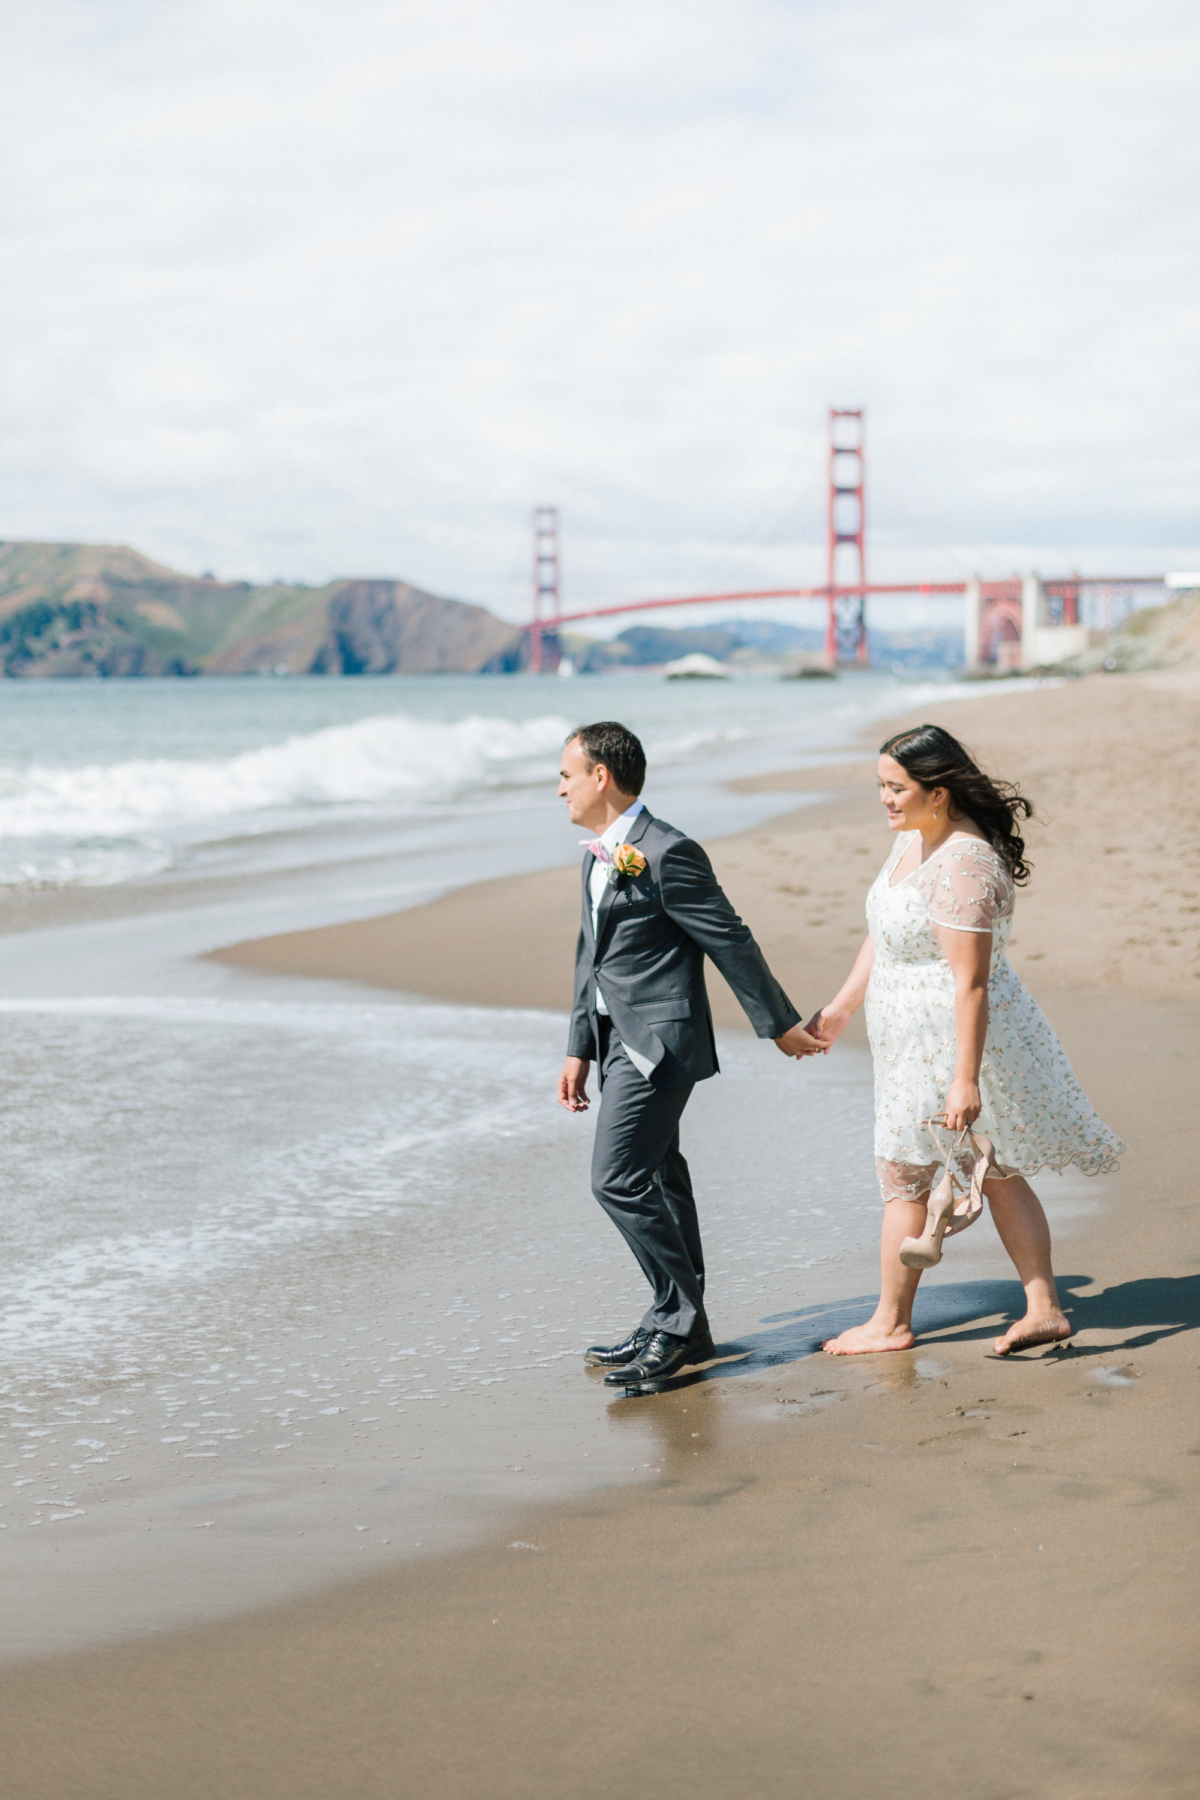 7 Elevated Trip Ideas for Your Beach Bride